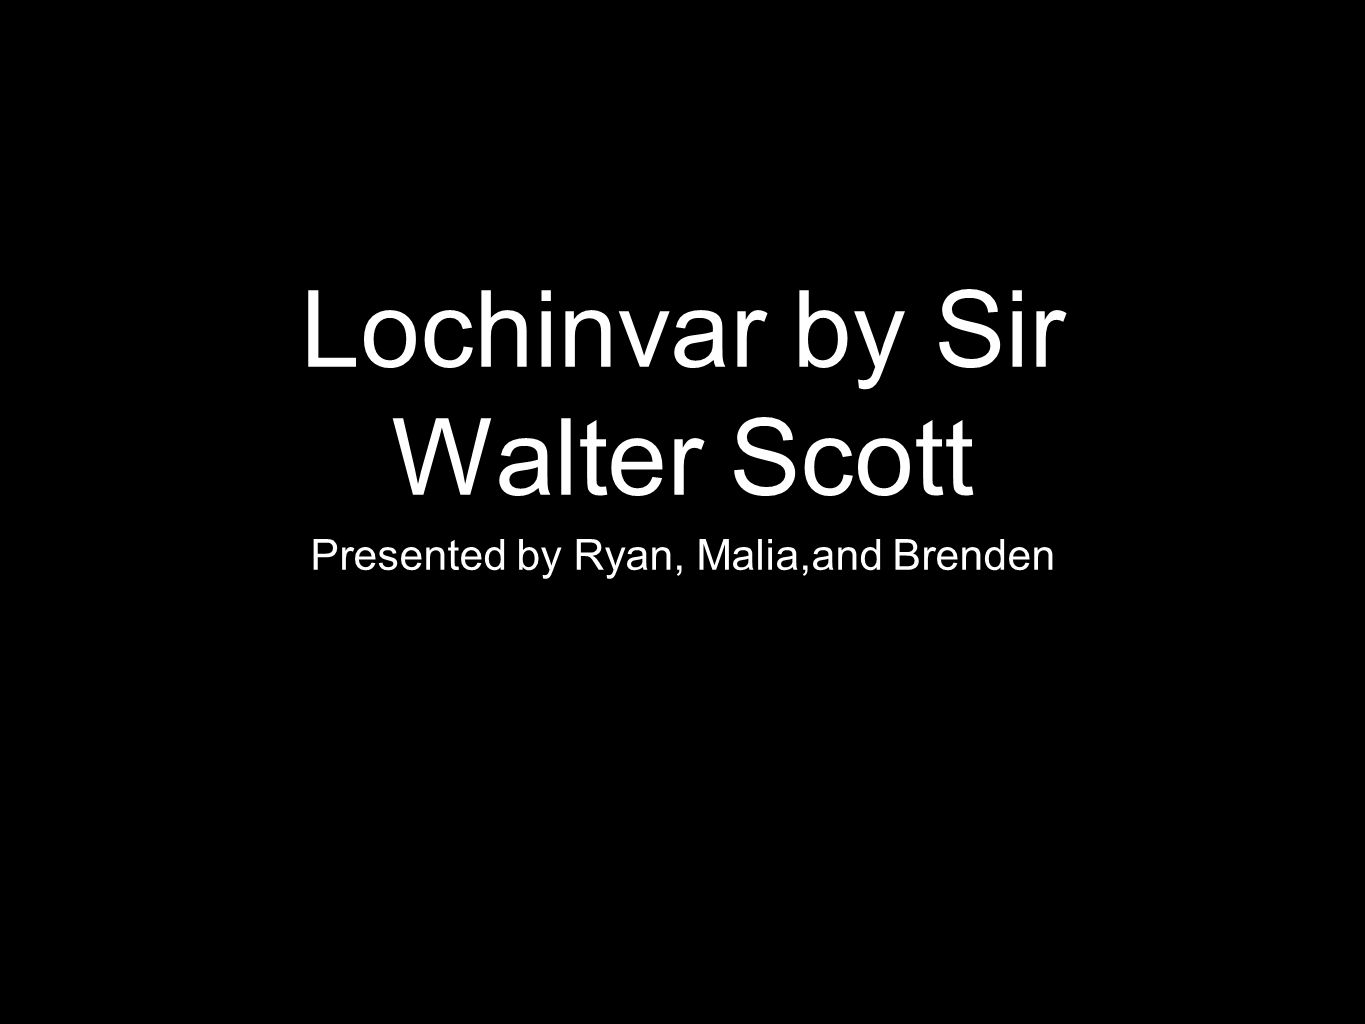 character sketch of lochinvar